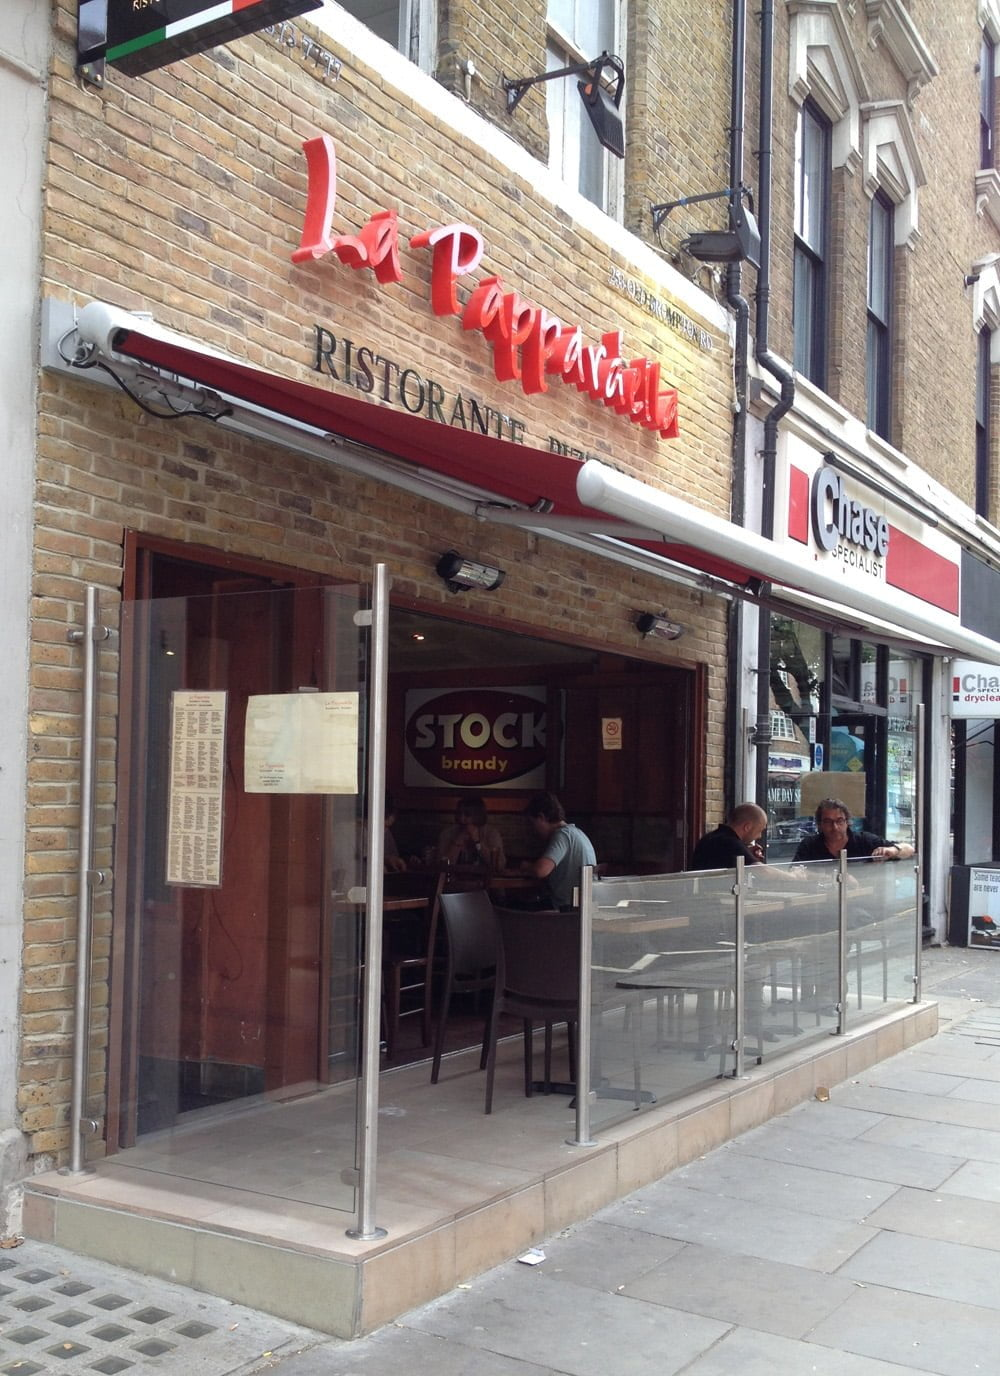 La Pappardella London